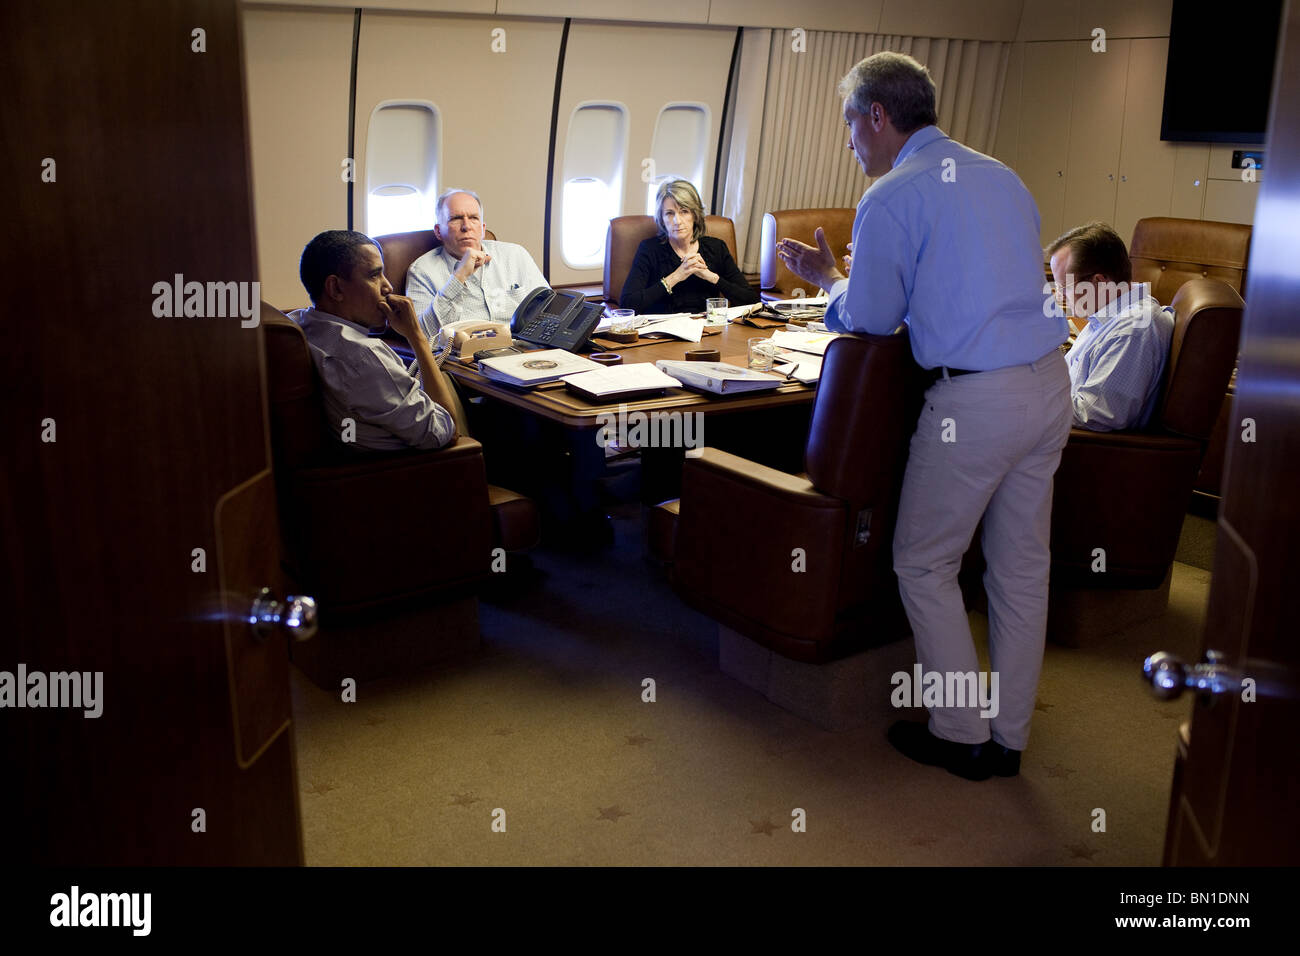 Barack Obama listens to Chief of Staff Rahm Emanuel, right, during a briefing on the BP oil spill in the Gulf of - Stock Image